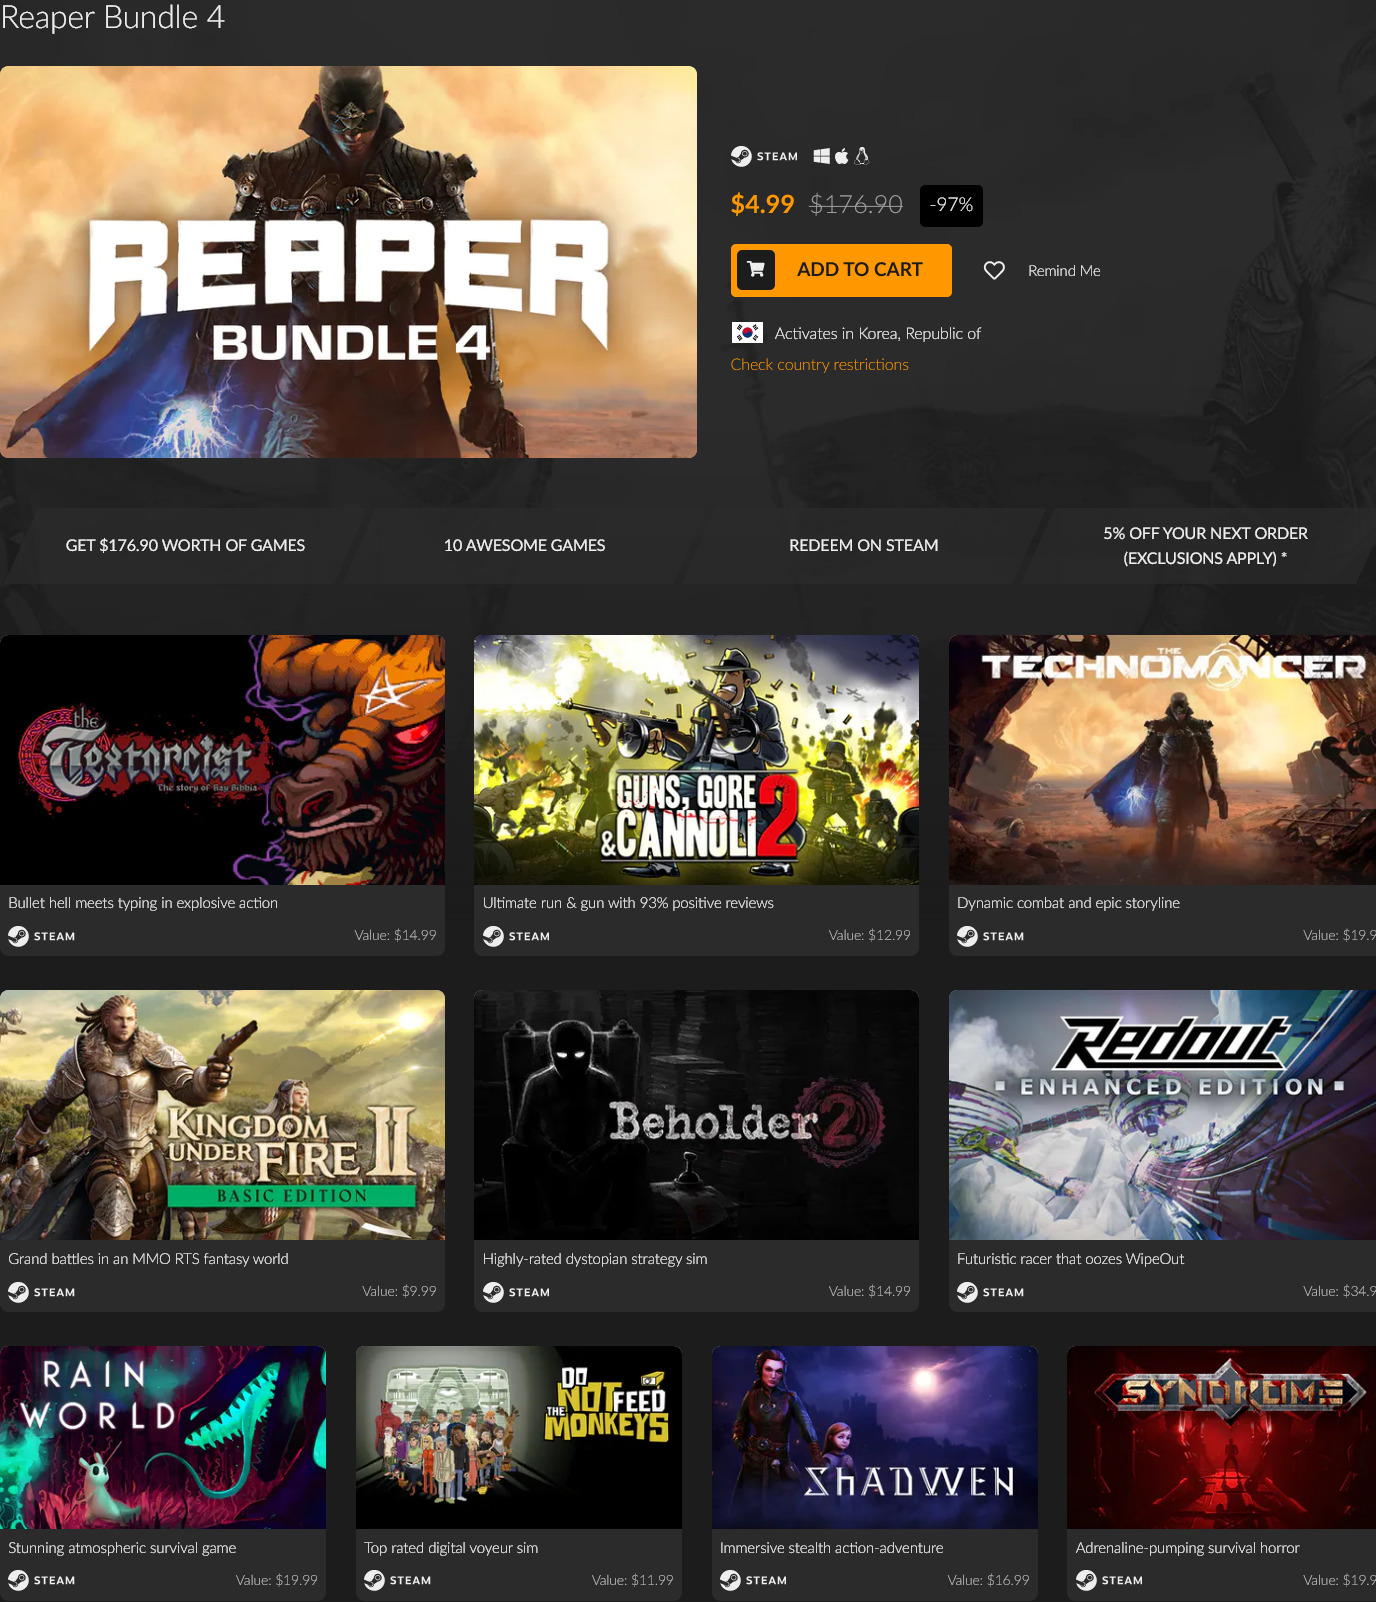 Screenshot_2020-07-17 Reaper Bundle 4 Steam Game Bundle Fanatical.jpg